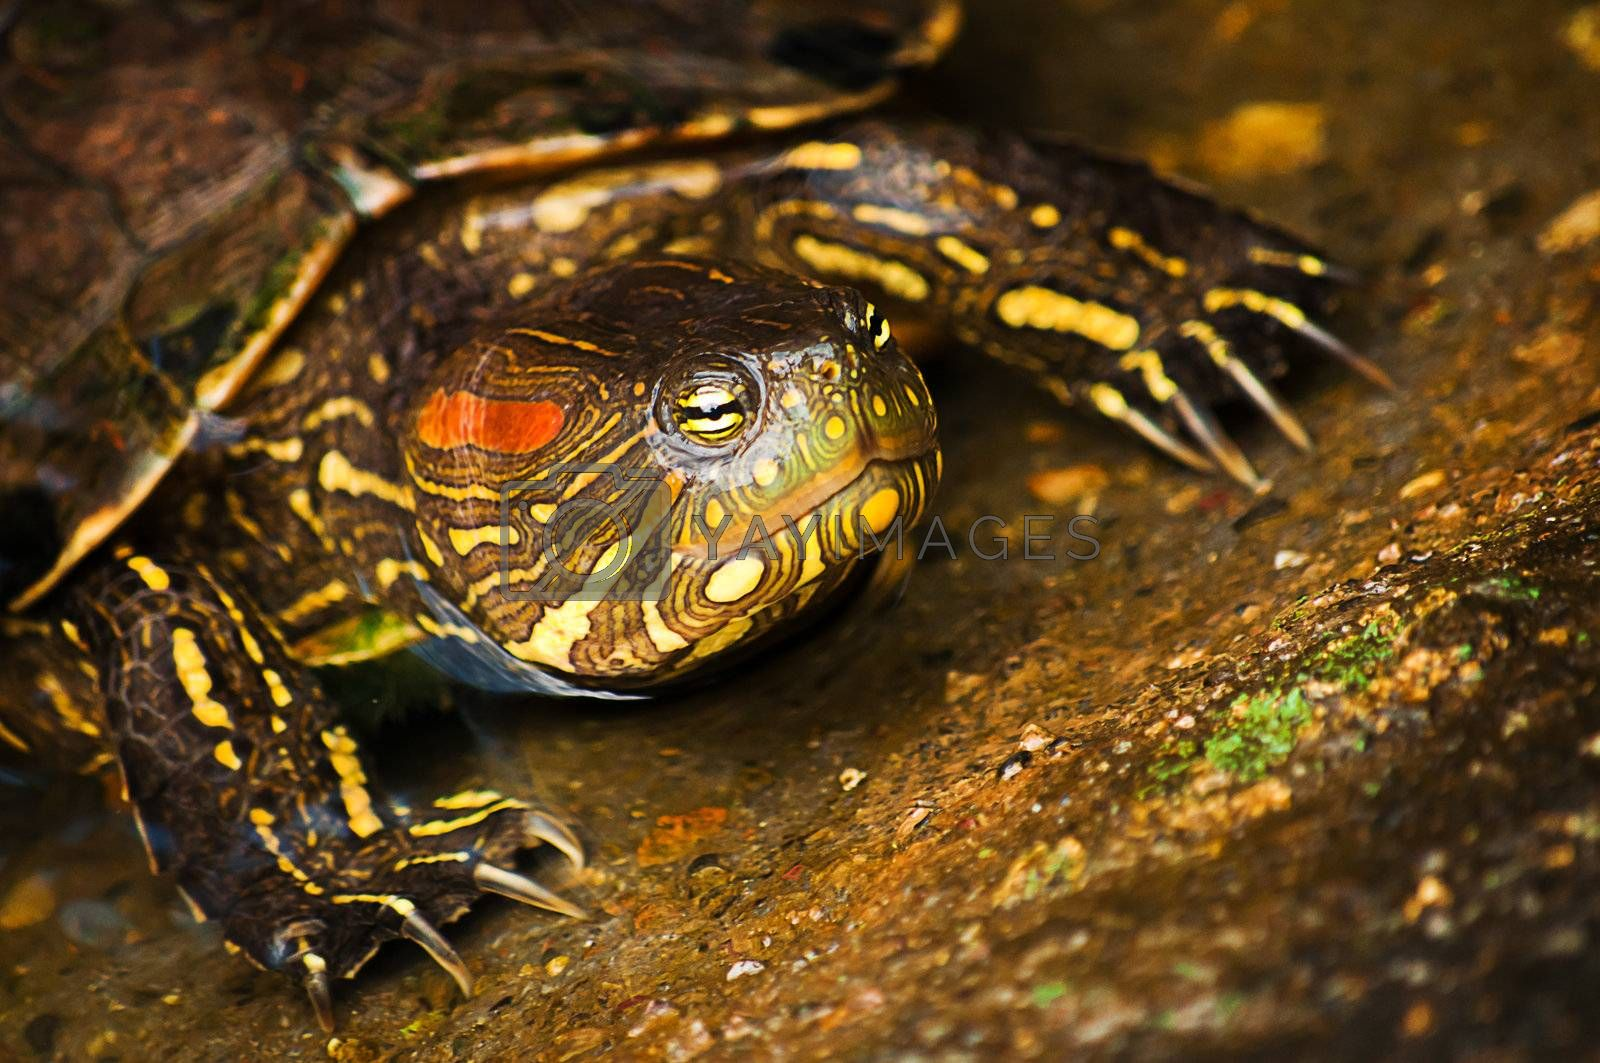 A red-eared slider turtle coming out of the water.